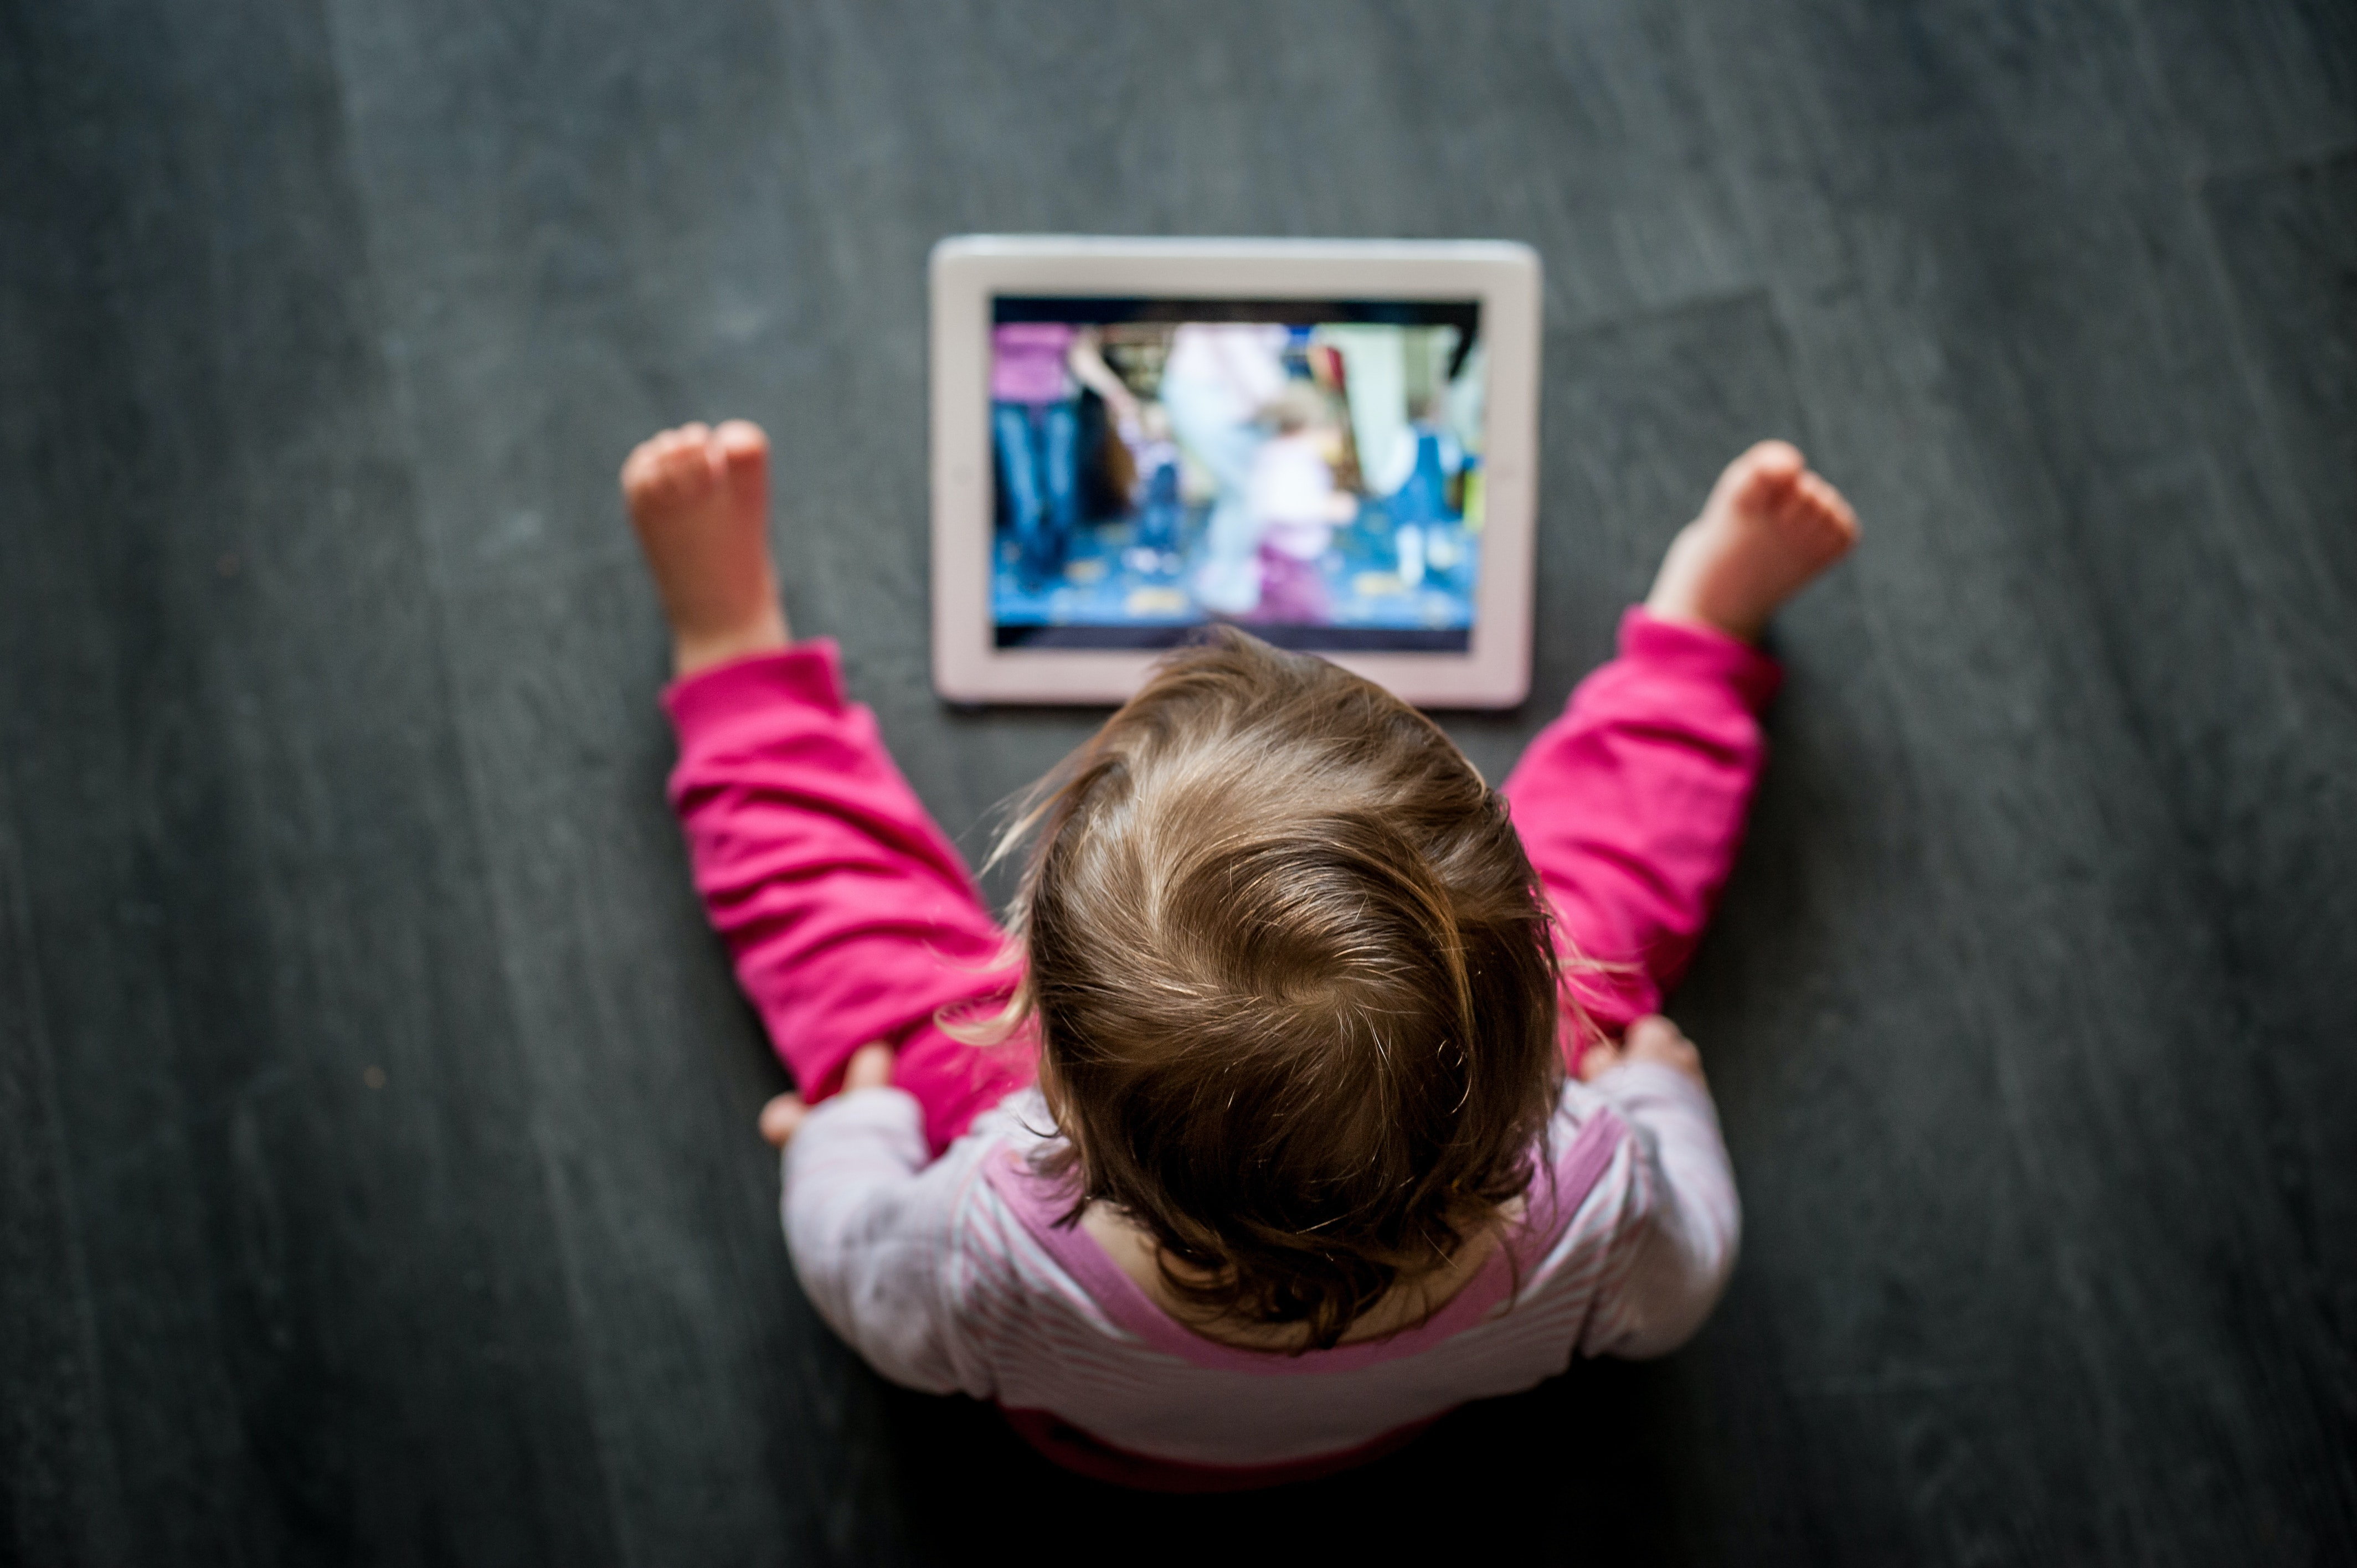 Touchscreens can benefit toddlers – but it's worth choosing your child's apps wisely